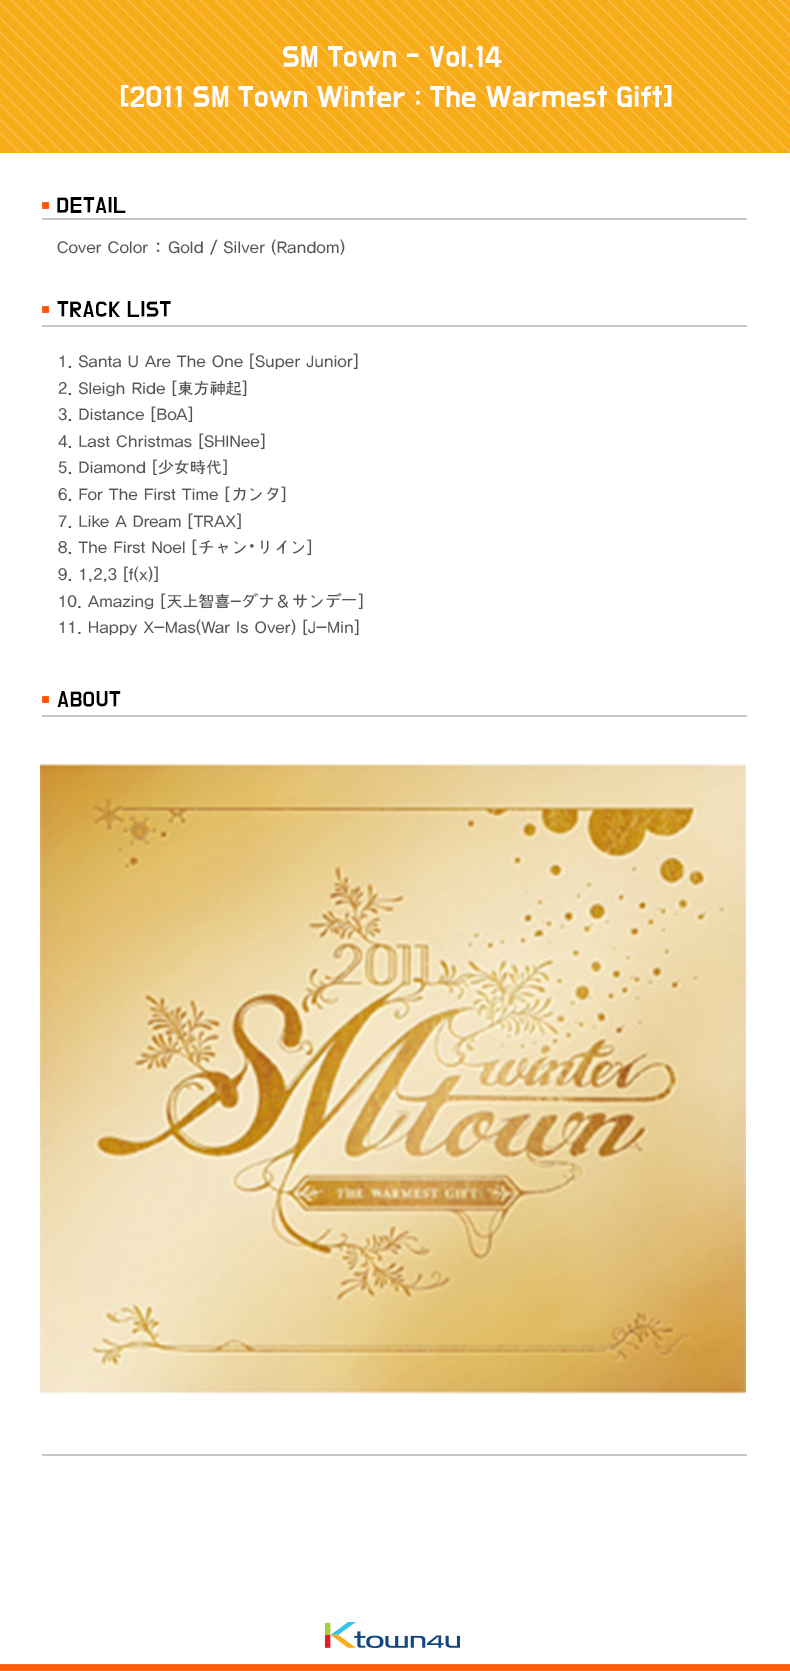 SM Town - Vol.14 [2011 SM Town Winter : The Warmest Gift]